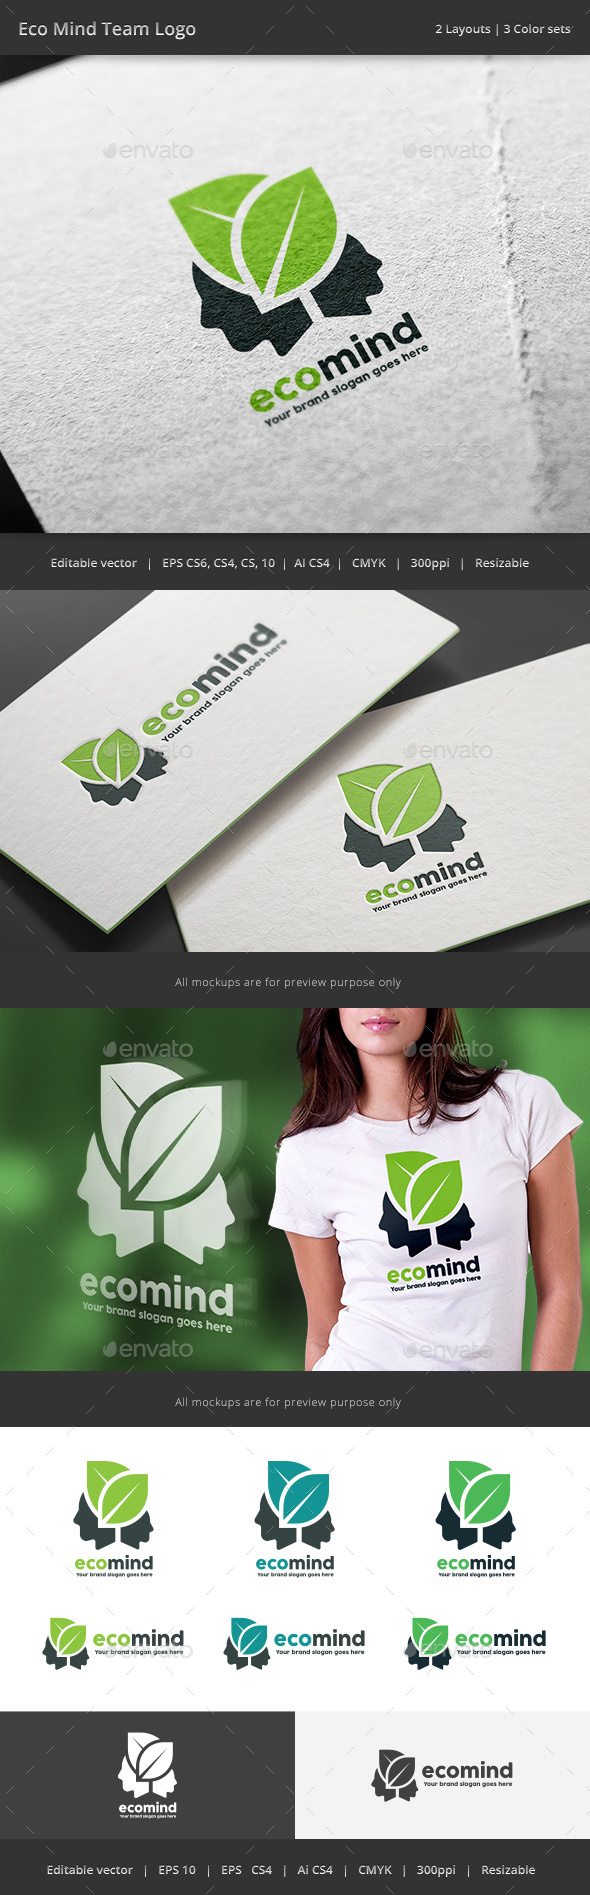 Eco Mind Team Logo - Vector Abstract